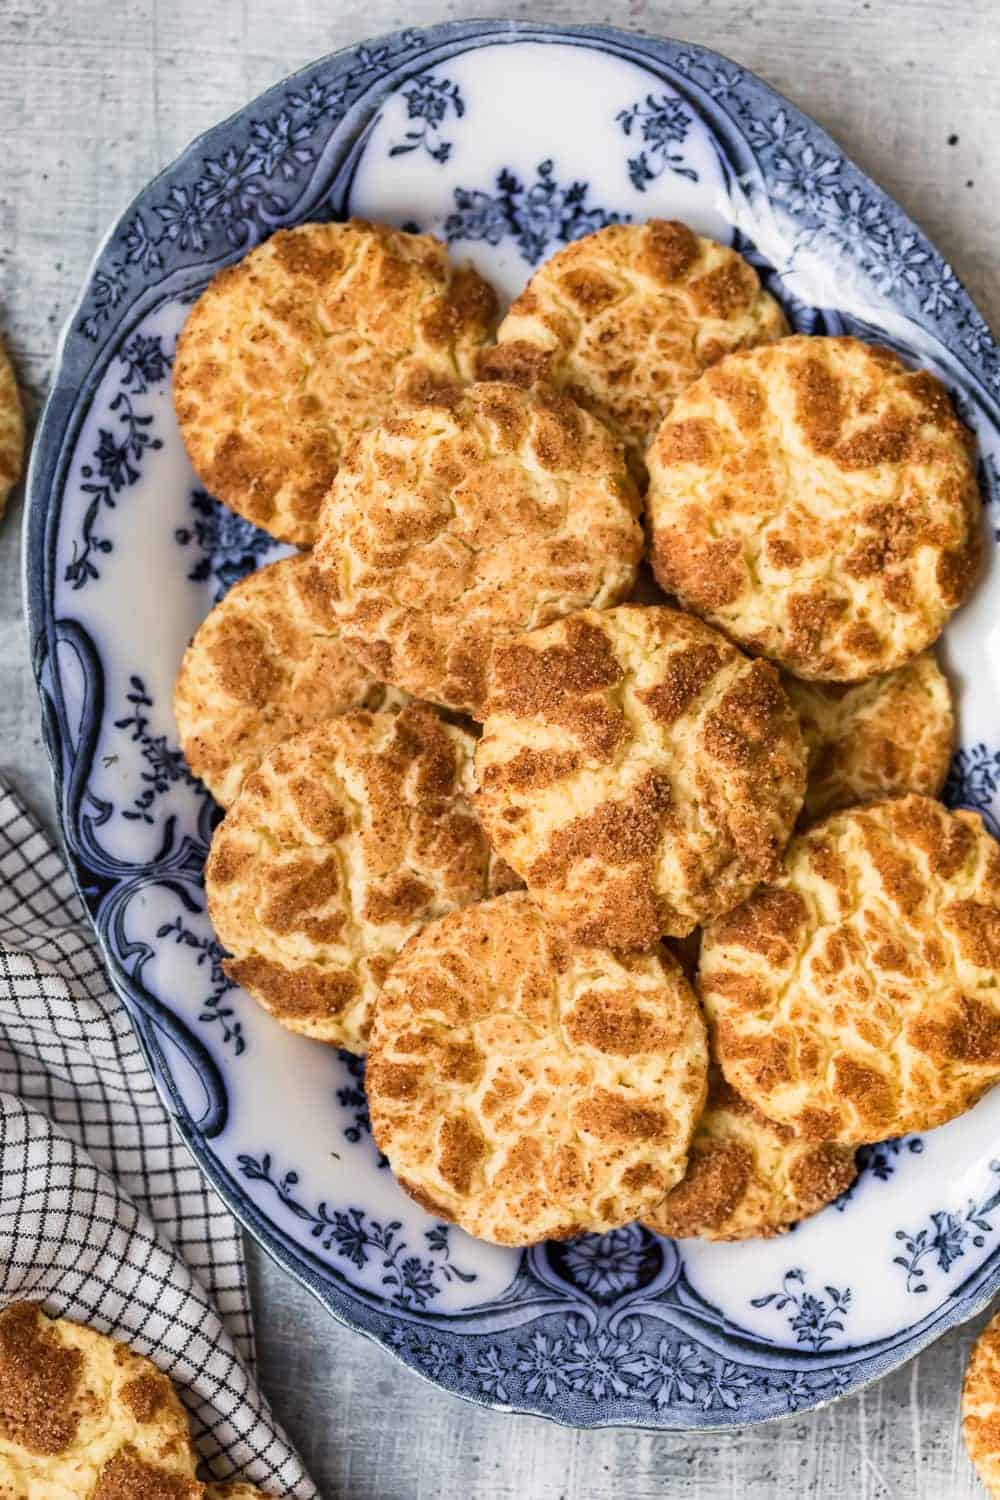 Snickerdoodles on a serving plate